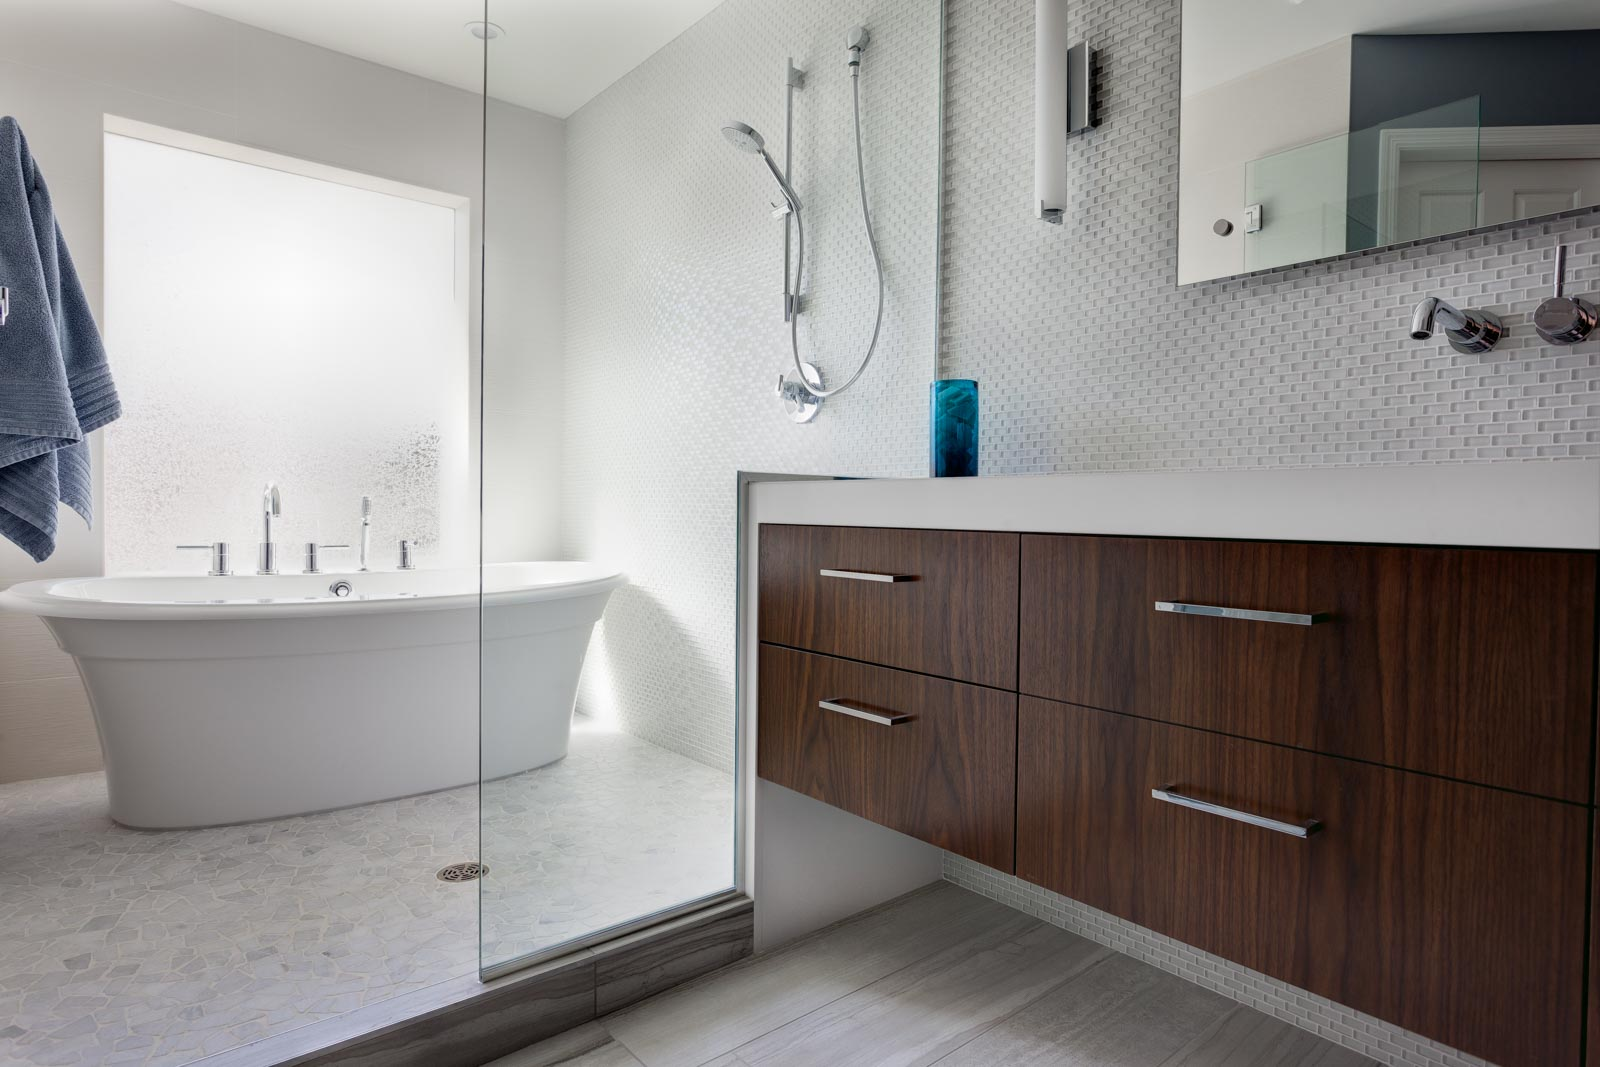 Bathroom Remodeling Minneapolis St Paul Minnesota McDonald - Modern kitchen and bathroom designs